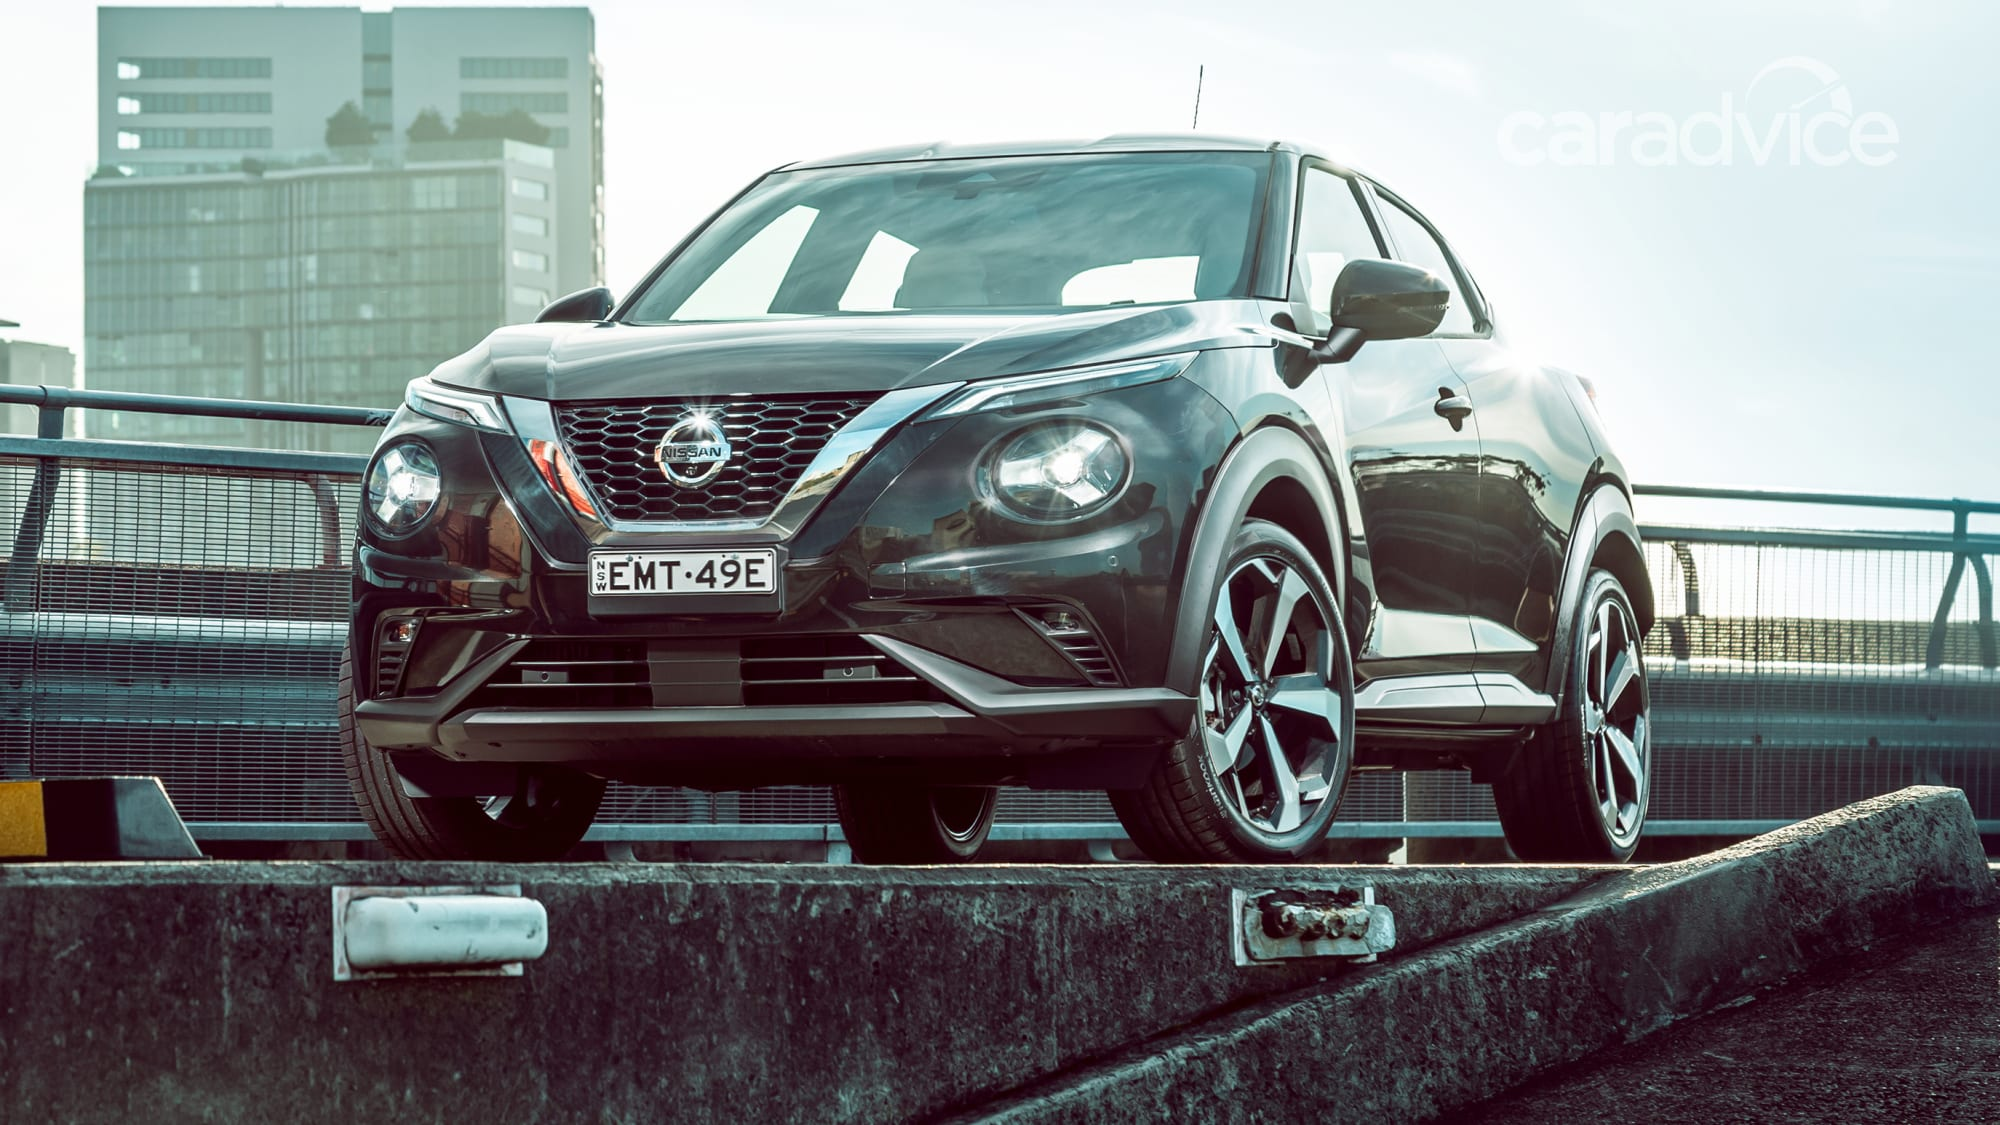 2021 Nissan Juke price and specs: ST-L+ and Ti Energy ...